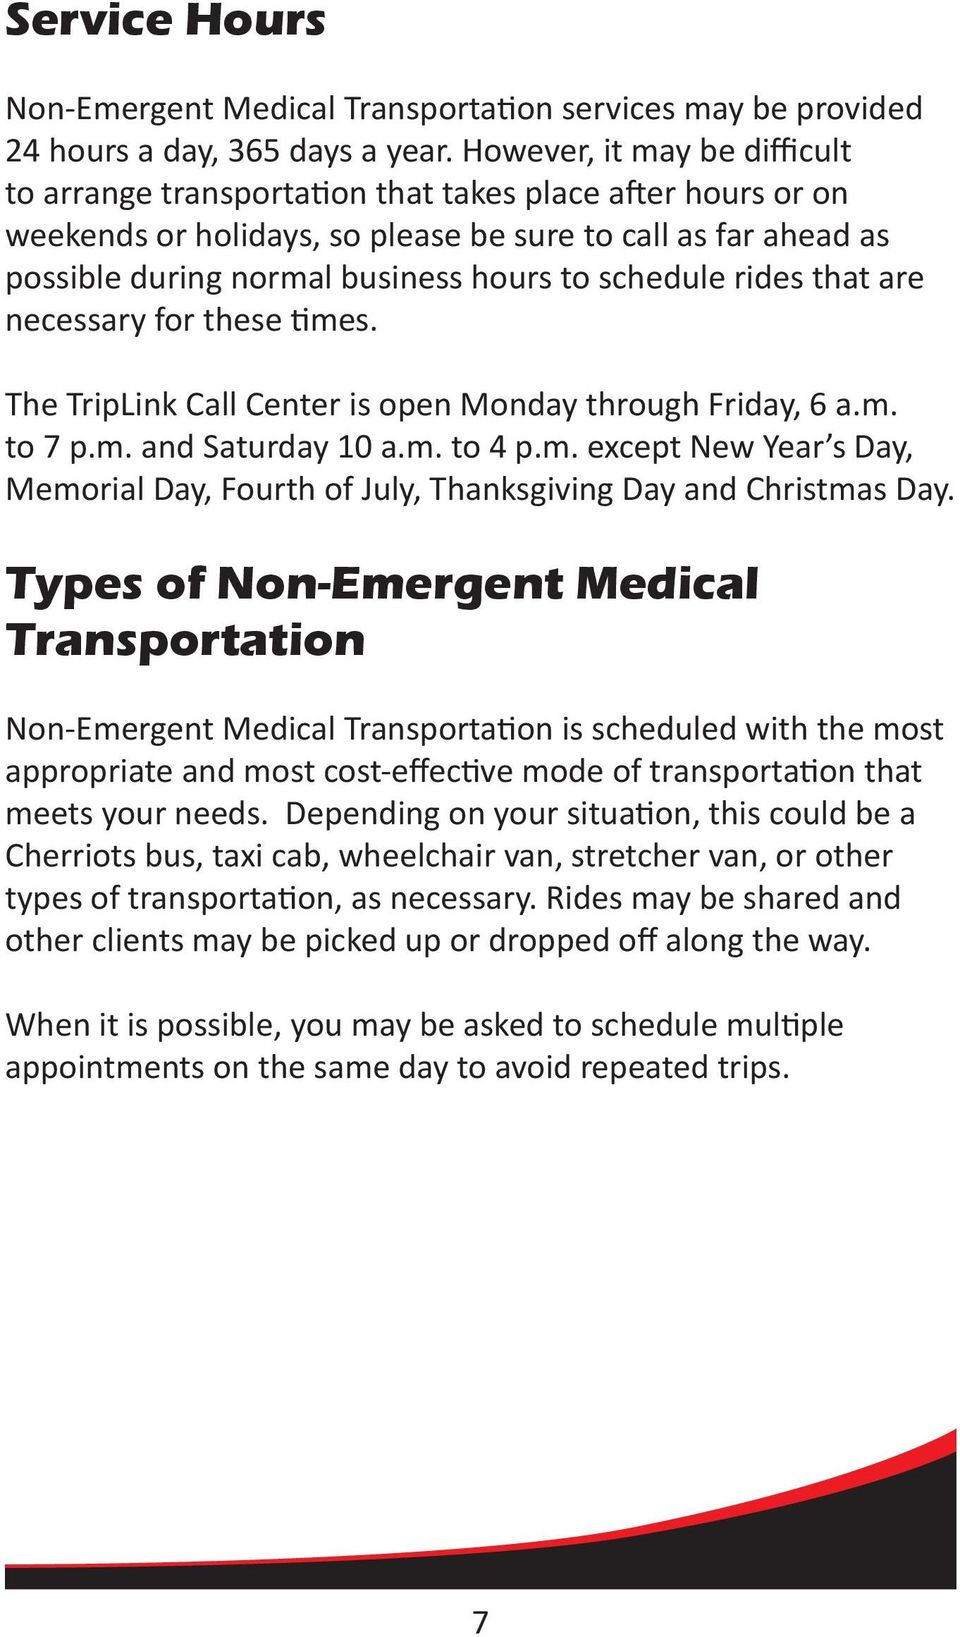 schedule rides that are necessary for these times. The TripLink Call Center is open Monday through Friday, 6 a.m. to 7 p.m. and Saturday 10 a.m. to 4 p.m. except New Year s Day, Memorial Day, Fourth of July, Thanksgiving Day and Christmas Day.